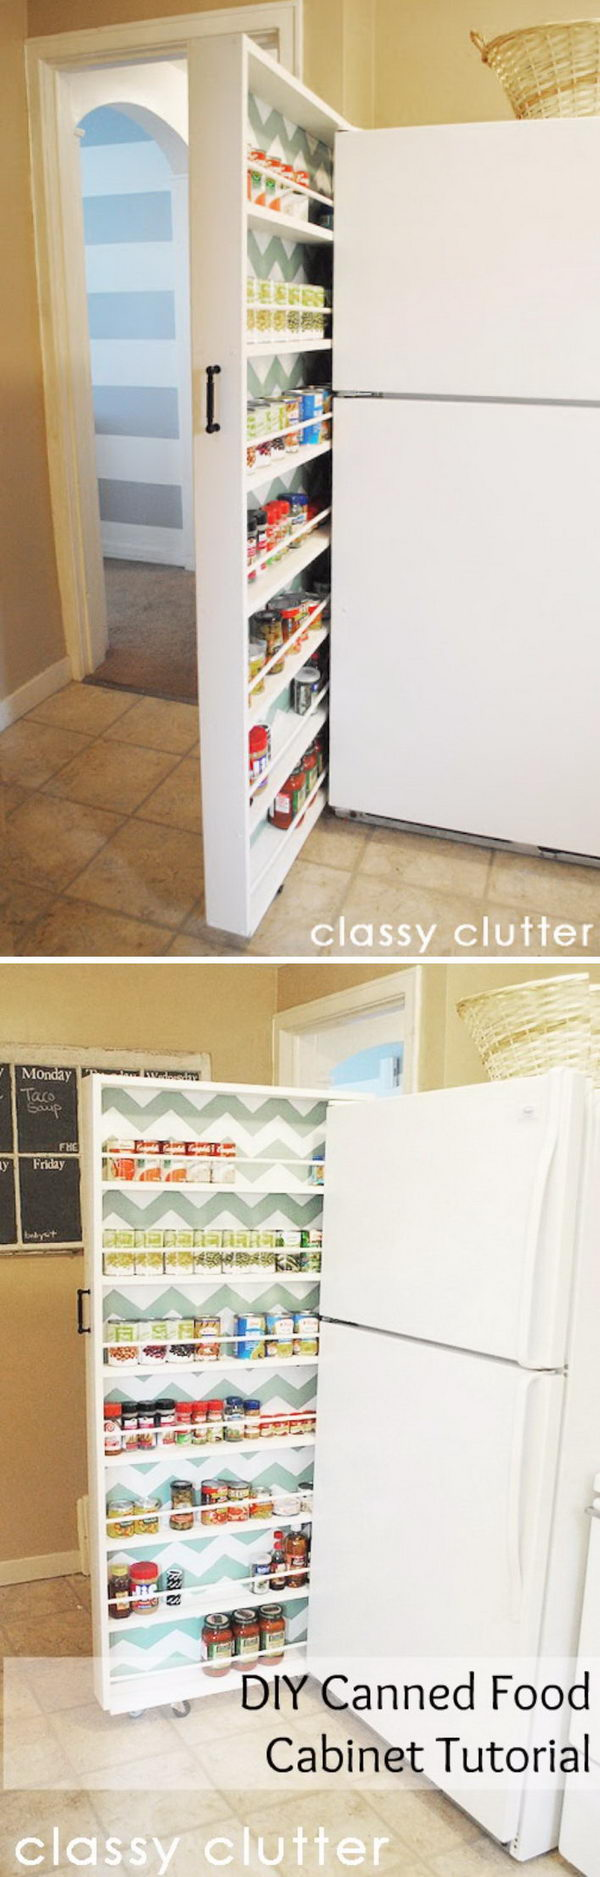 20 Creative Kitchen Organization And Diy Storage Ideas